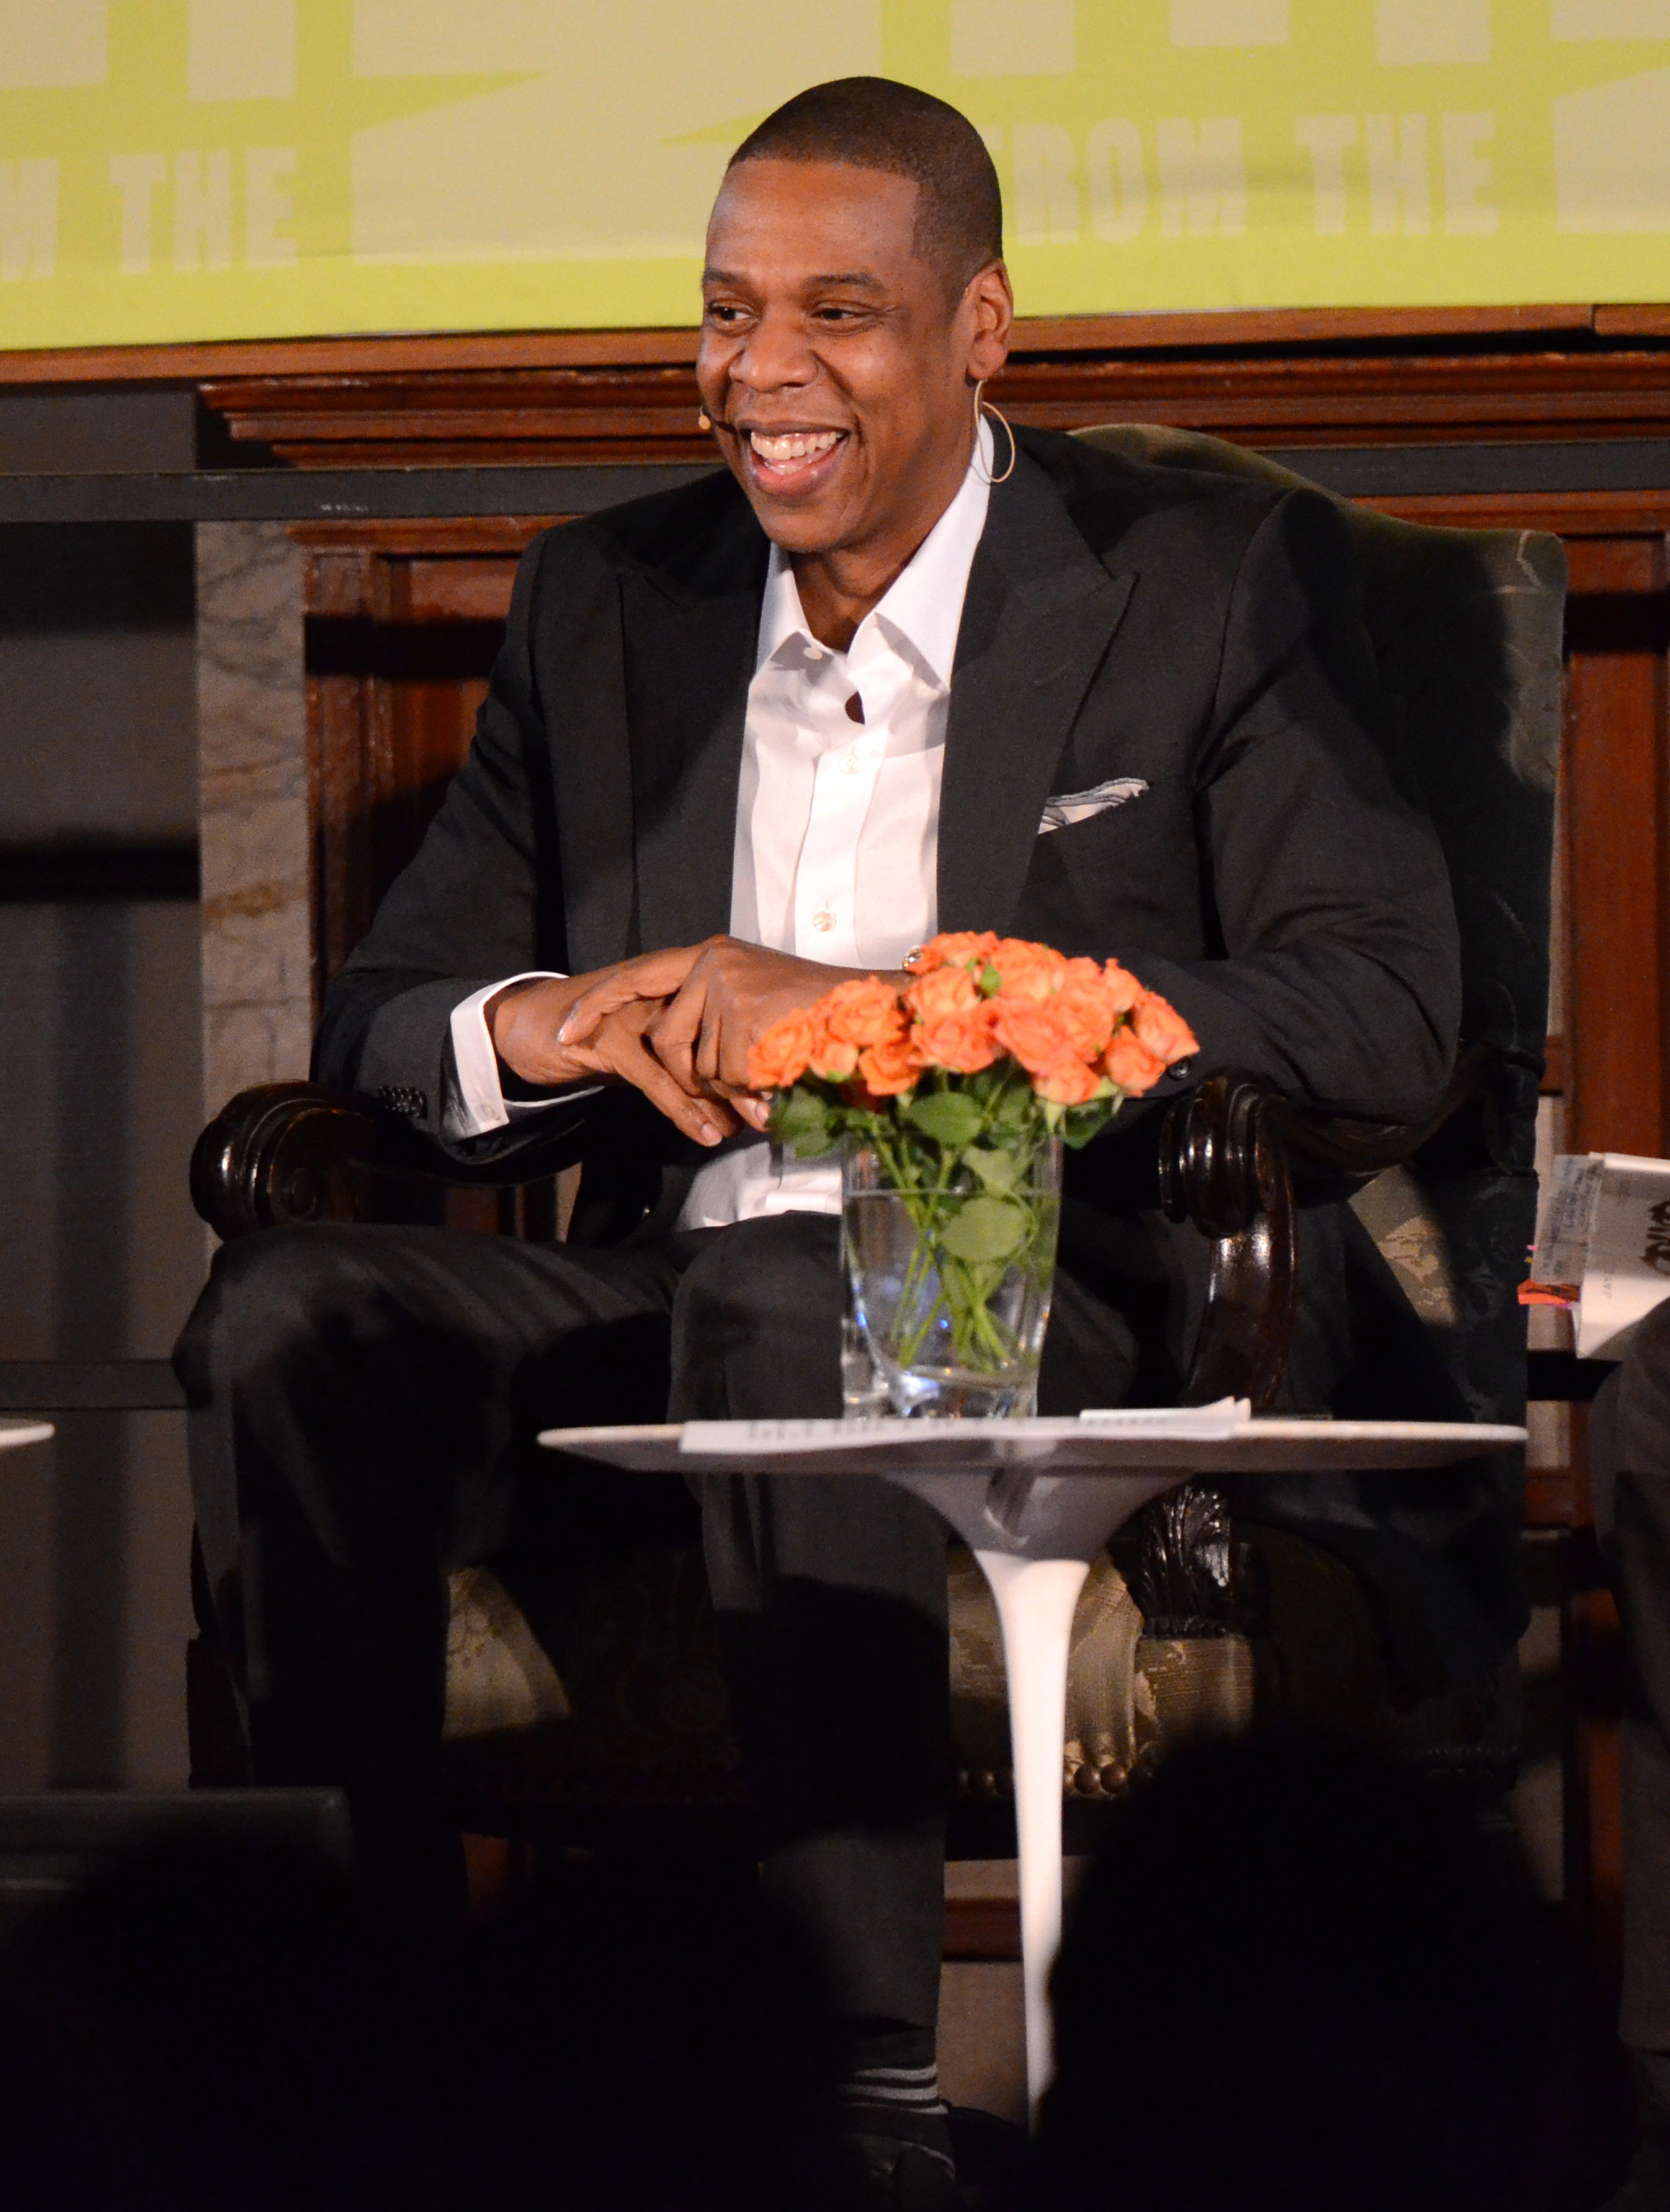 meet the parents jay z decoded book